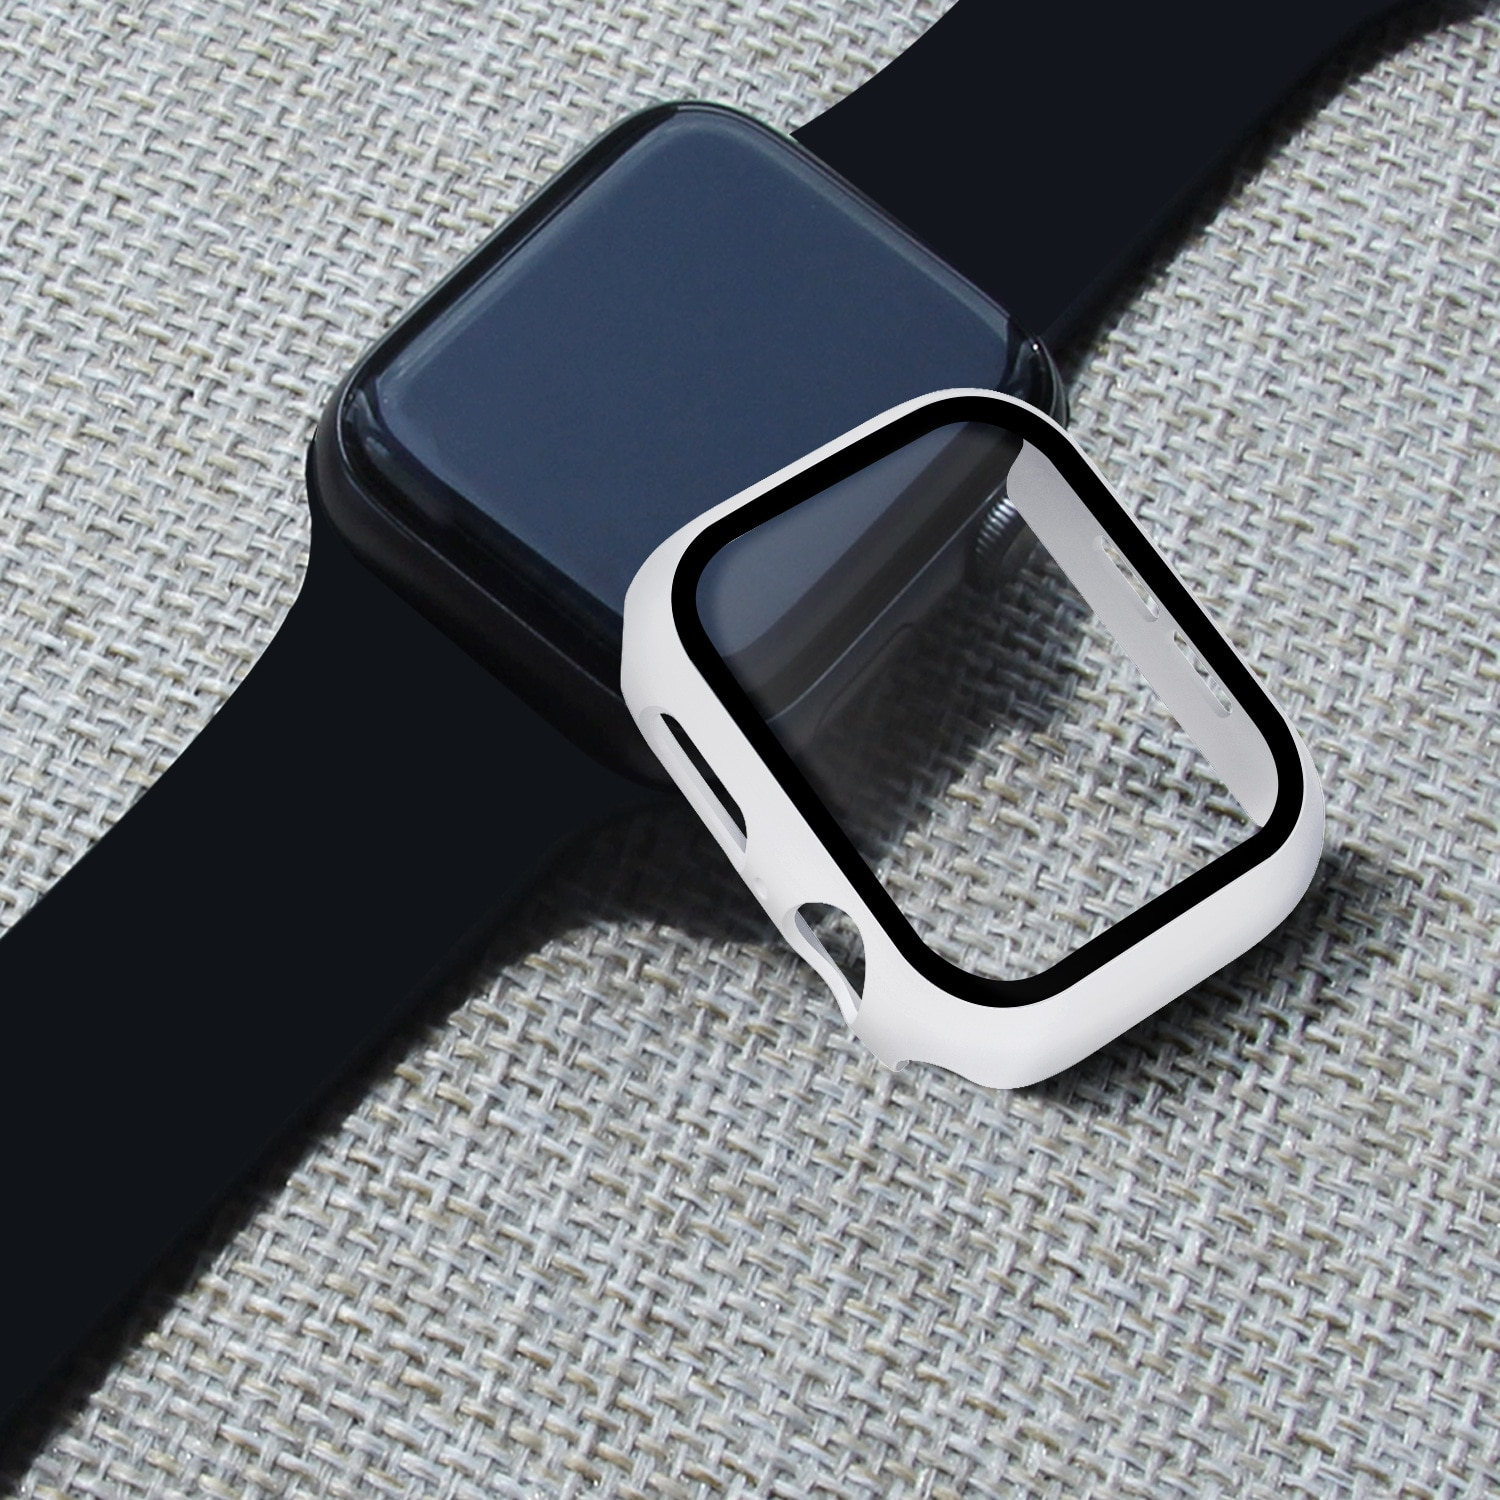 case for apple watch series 6 5 4 3 2 1 se band all around ultra thin screen protector cover iwatch case 44mm 40mm 42mm 38mm Glass+case For Apple Watch series SE 6 5 4 3 2 1 44mm 40mm iWatch Bumper Screen Protector Cover 42mm 38mm for Apple Watch Case